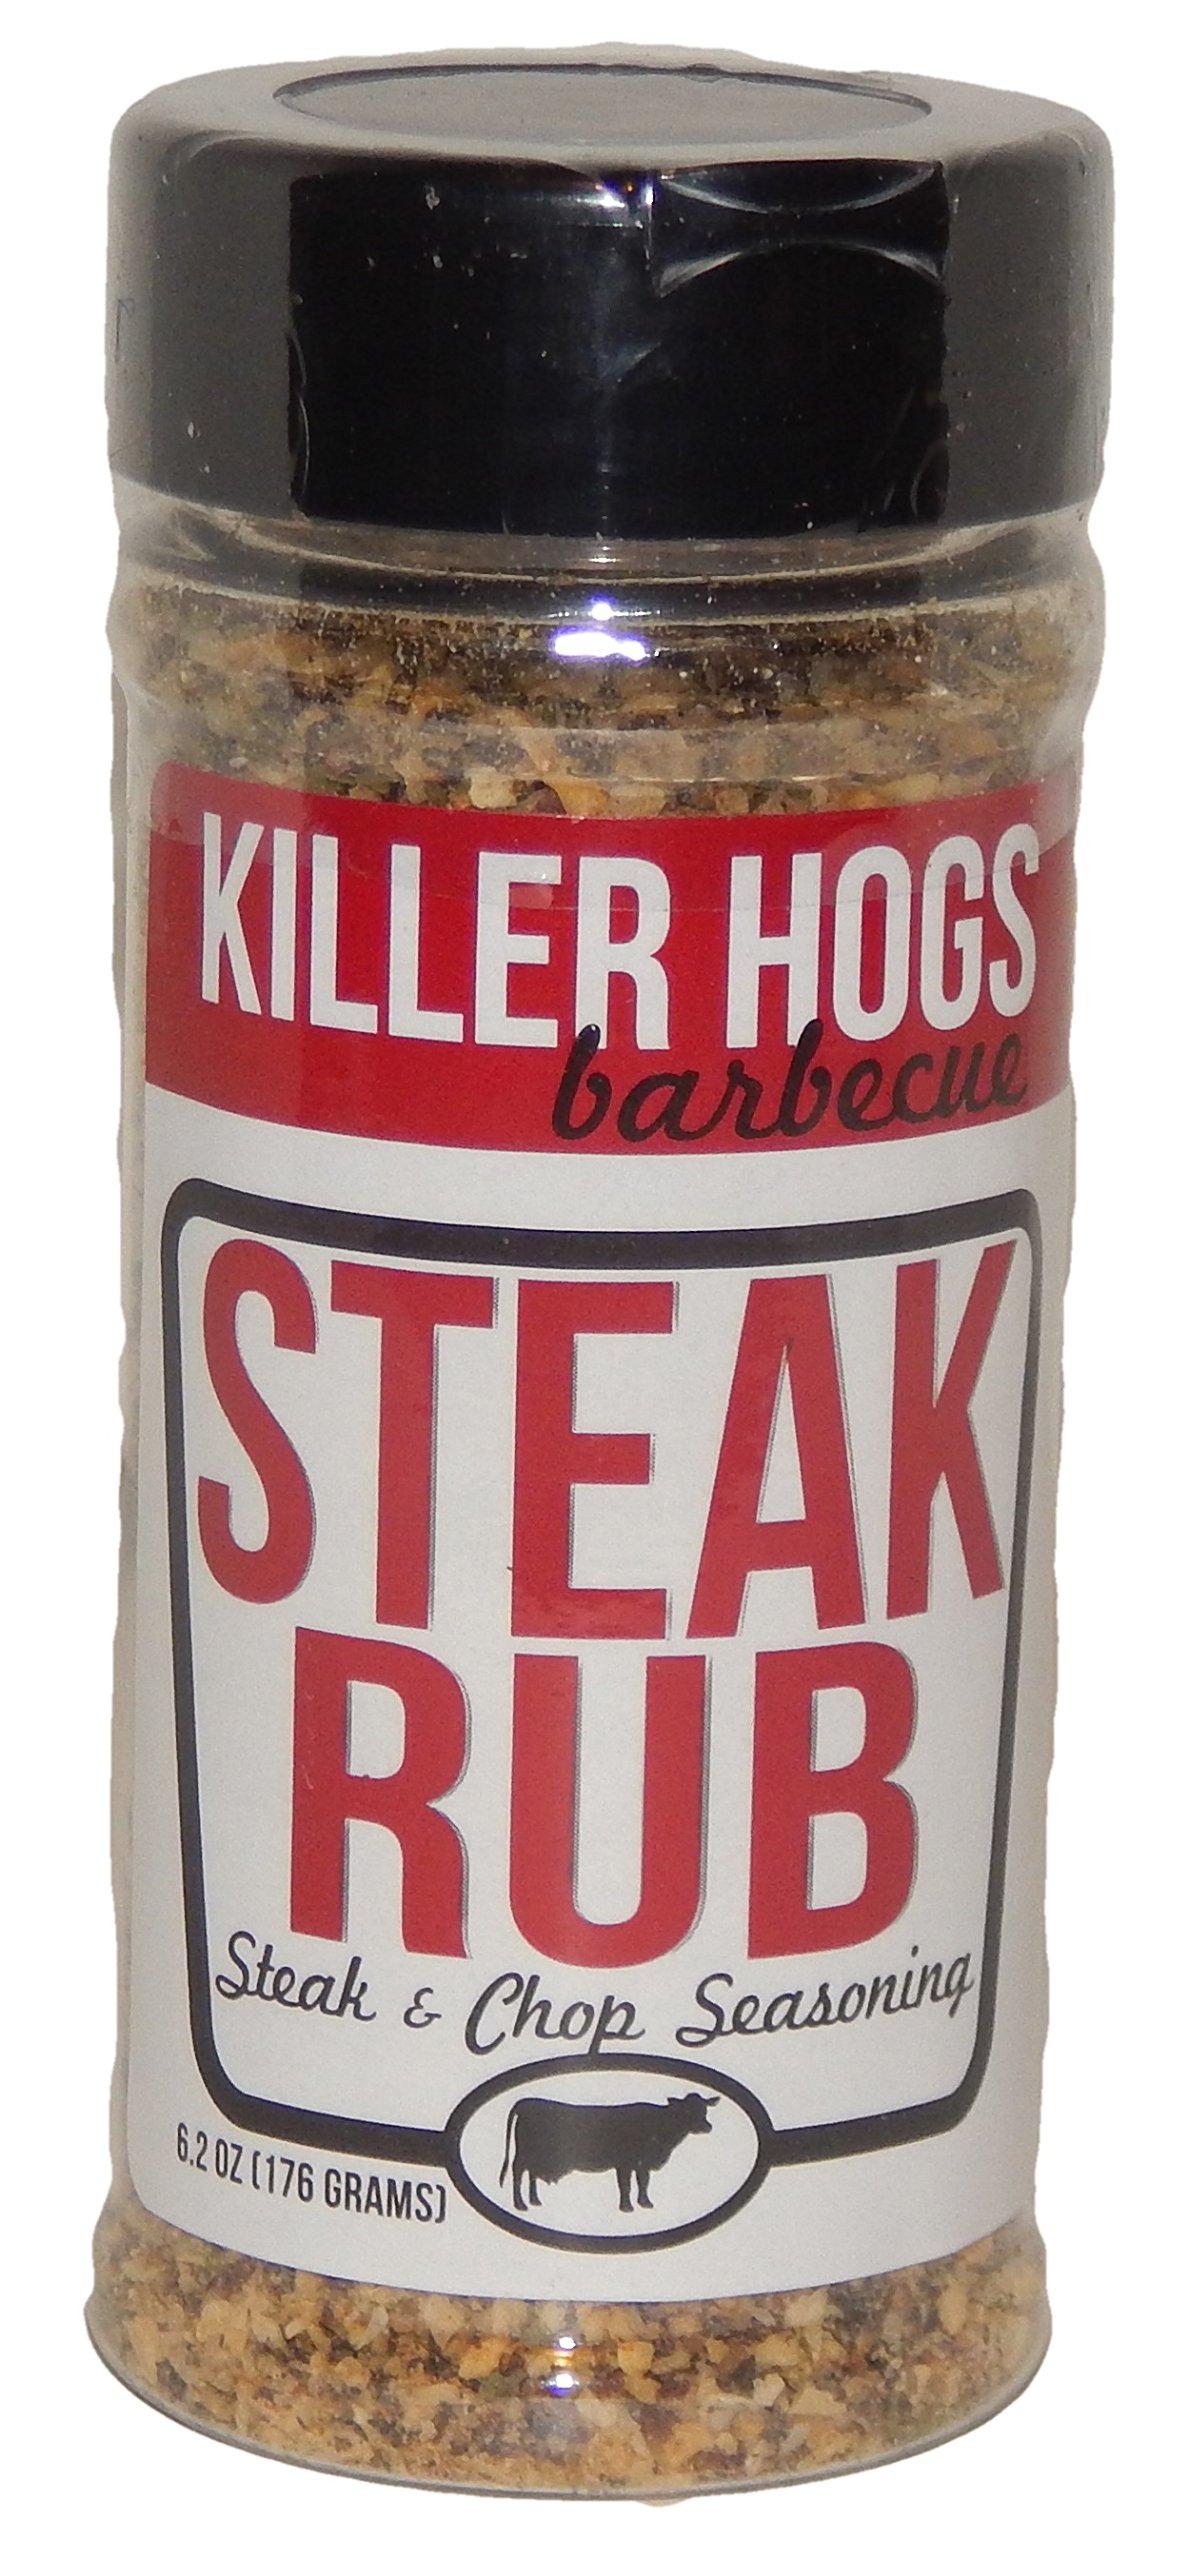 Killer Hogs Steak Rub - Steak and Chop Seasoning